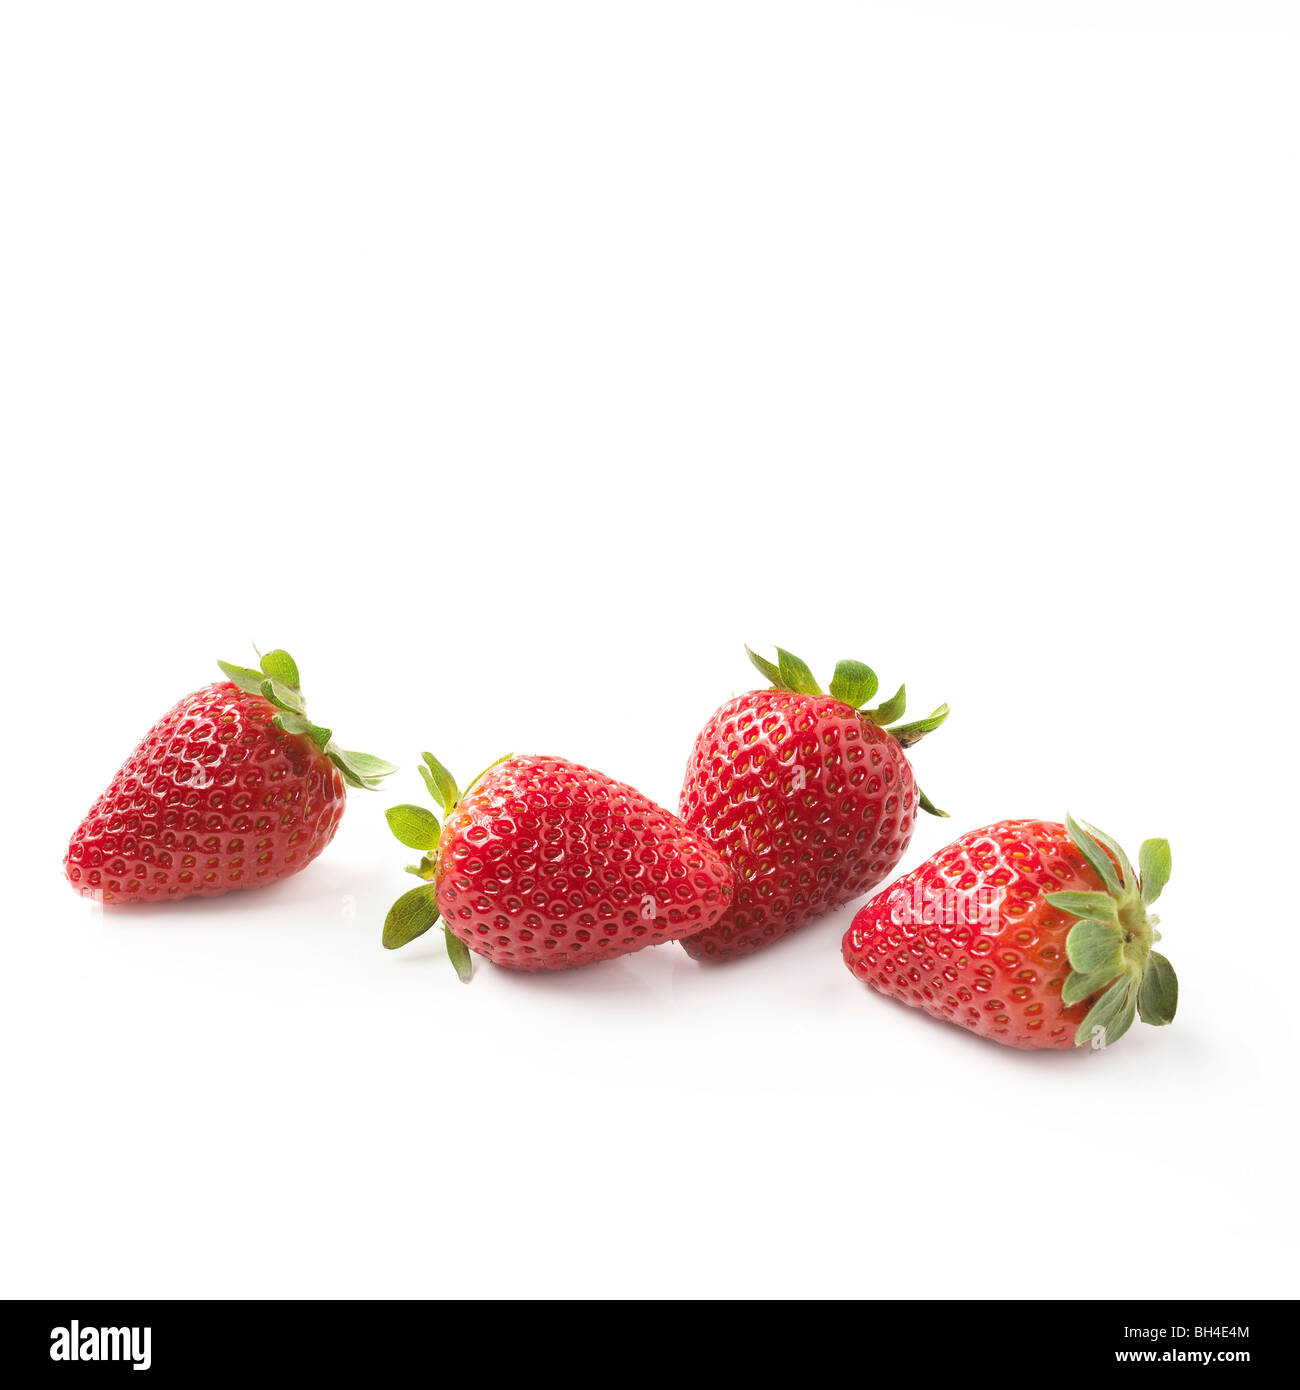 Strawberries on a white background - Stock Image